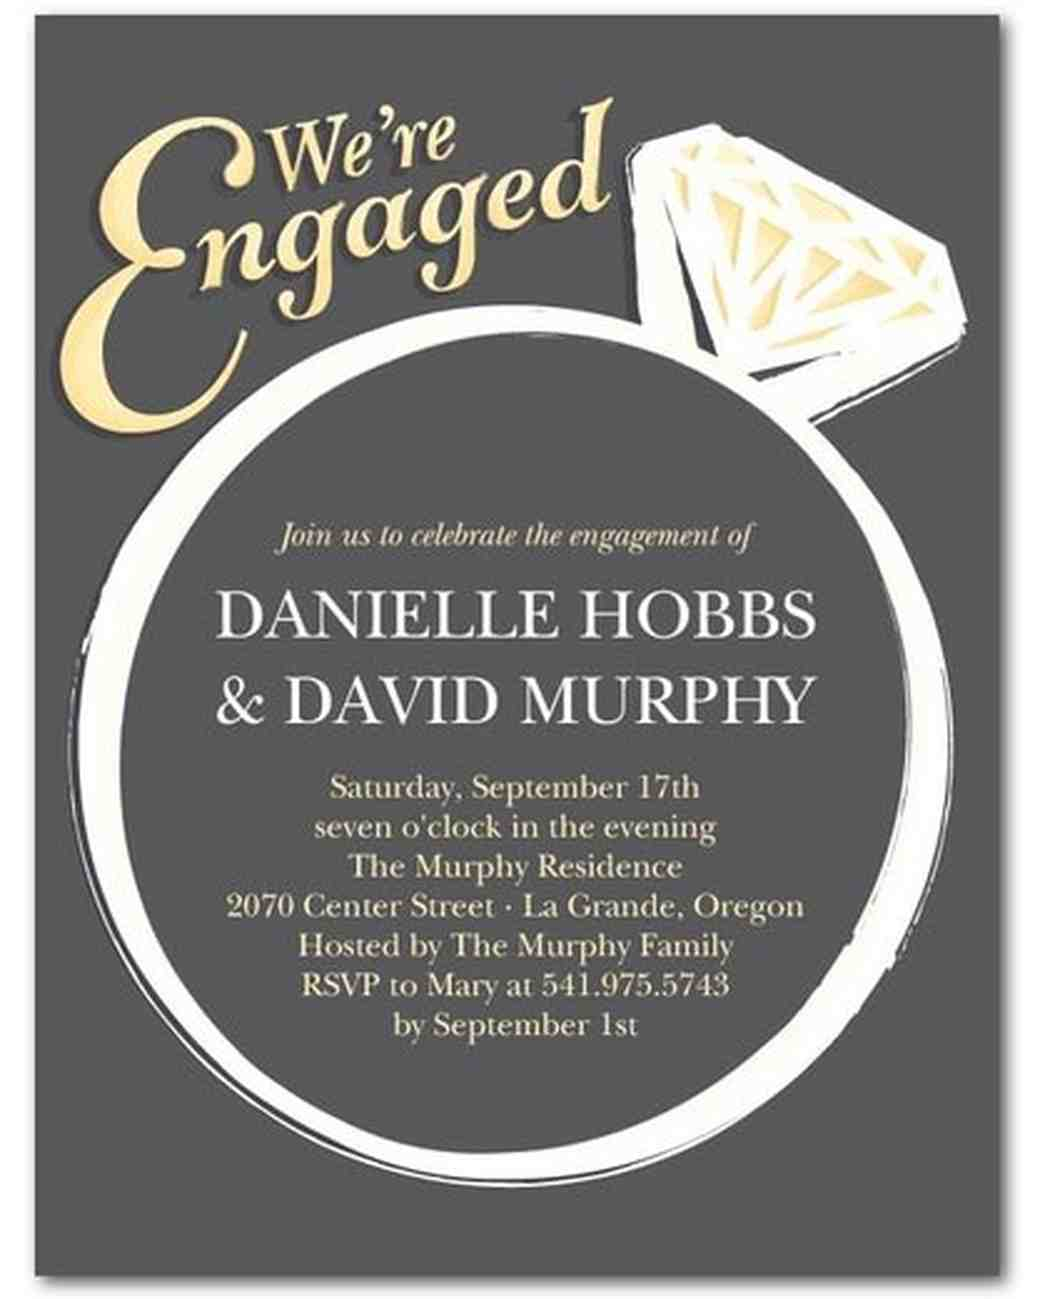 egagement invitations